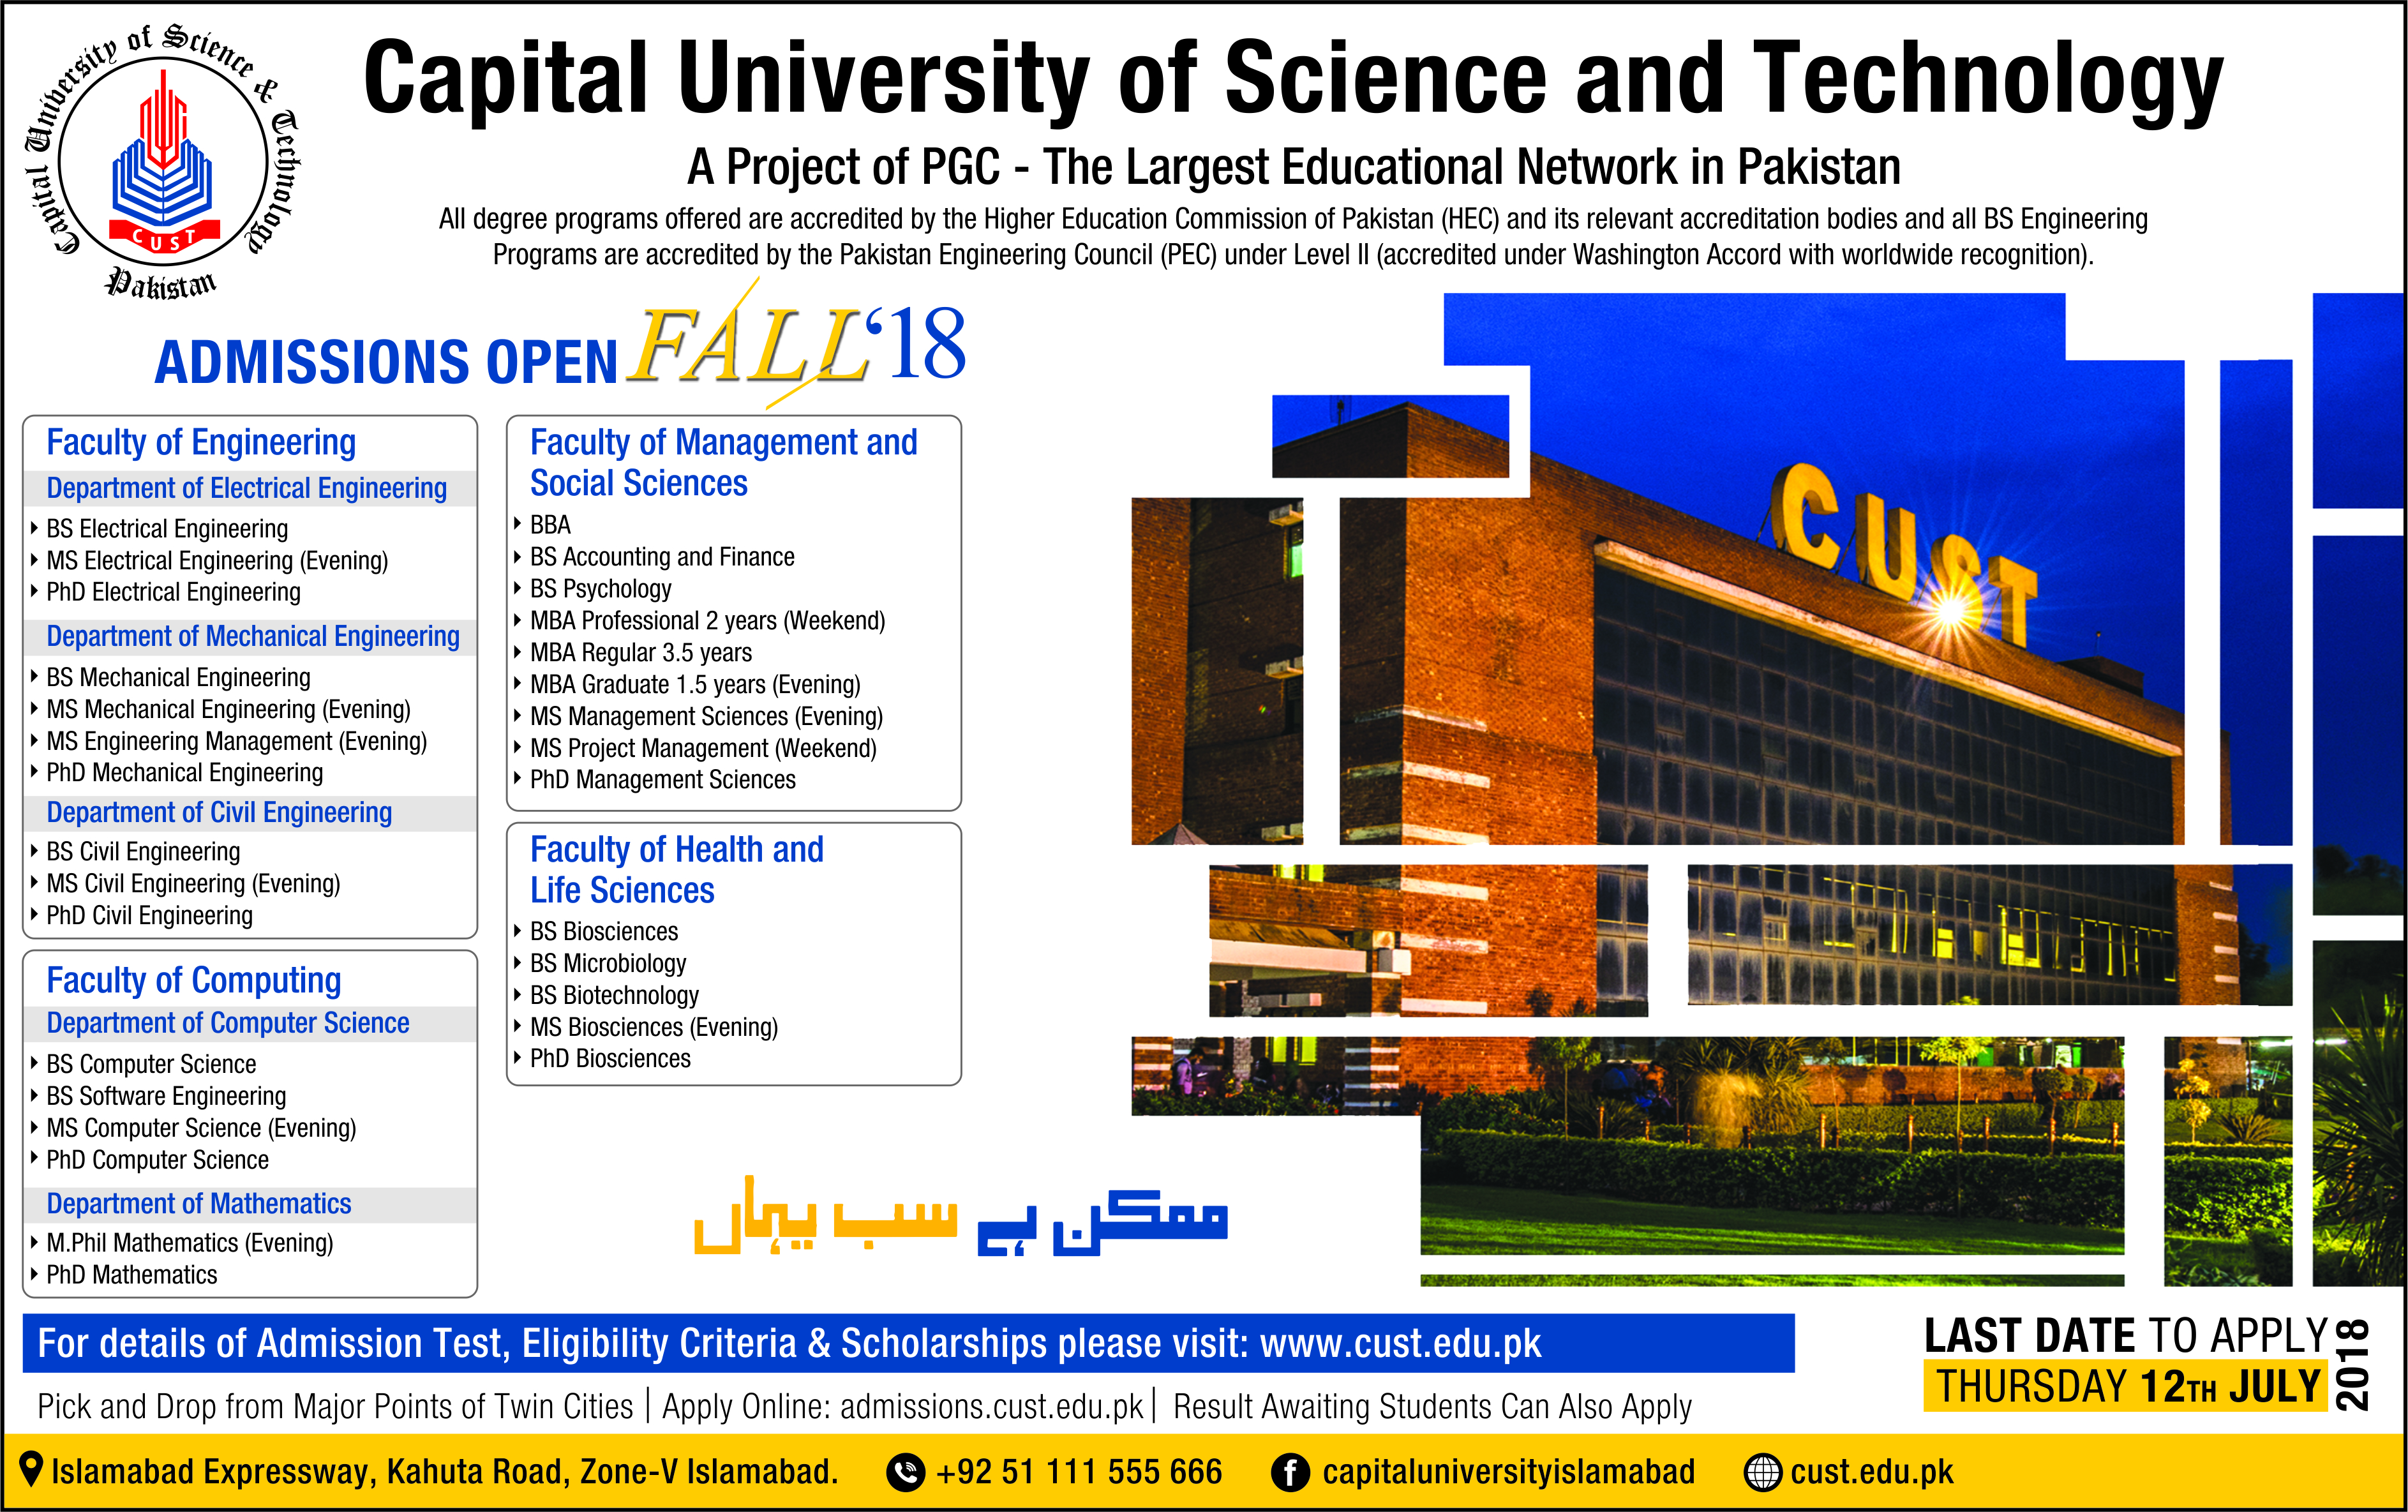 Capital University of Science & Technology(CUST) – Admissions 2018